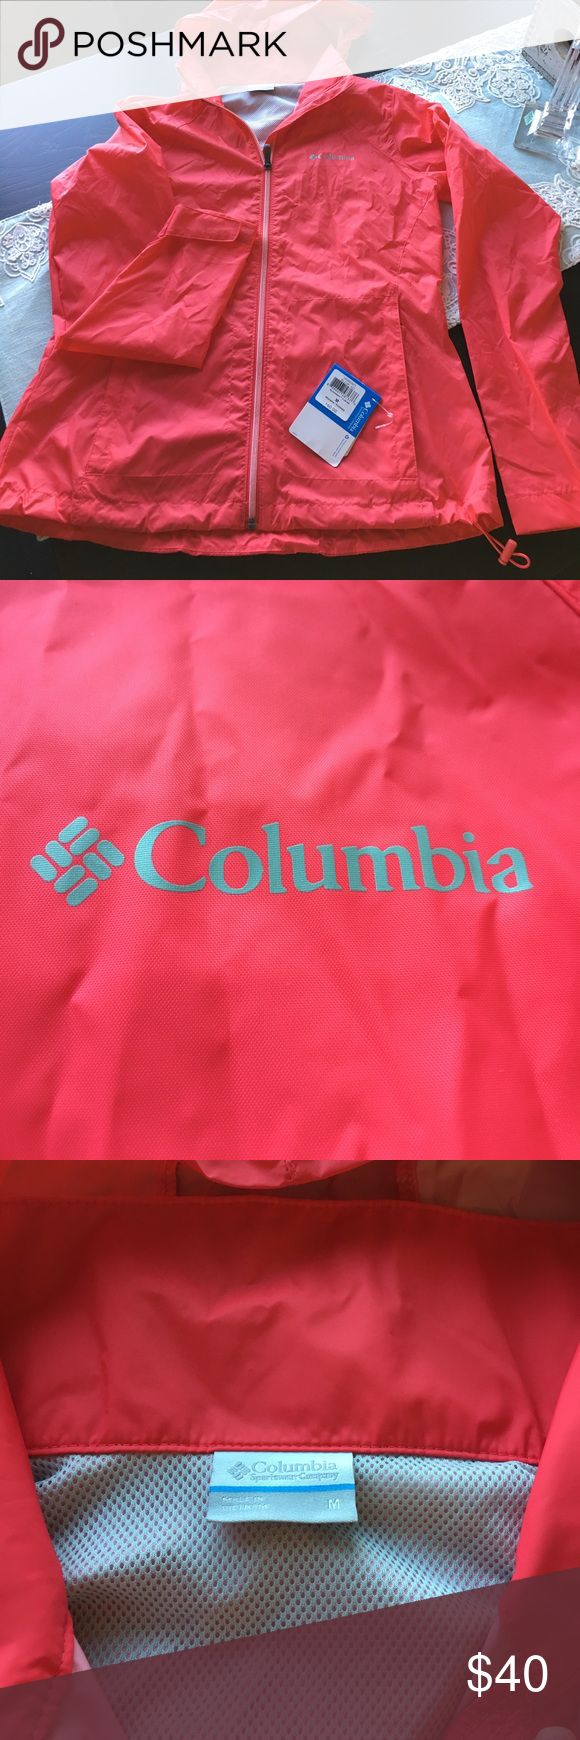 Columbia women's rain jacket Brand new ! Columbia switchback II jacket. Bought while on vacation in a pinch due to the weather forecast and I wore it for less than 10 minutes. I'm 5'10 and prefer men's jackets due to a very long torso. This jacket has a hood that rolls up when not in use and the whole jacket  is packable. Red camellia color is like a coral /red. Columbia Jackets & Coats